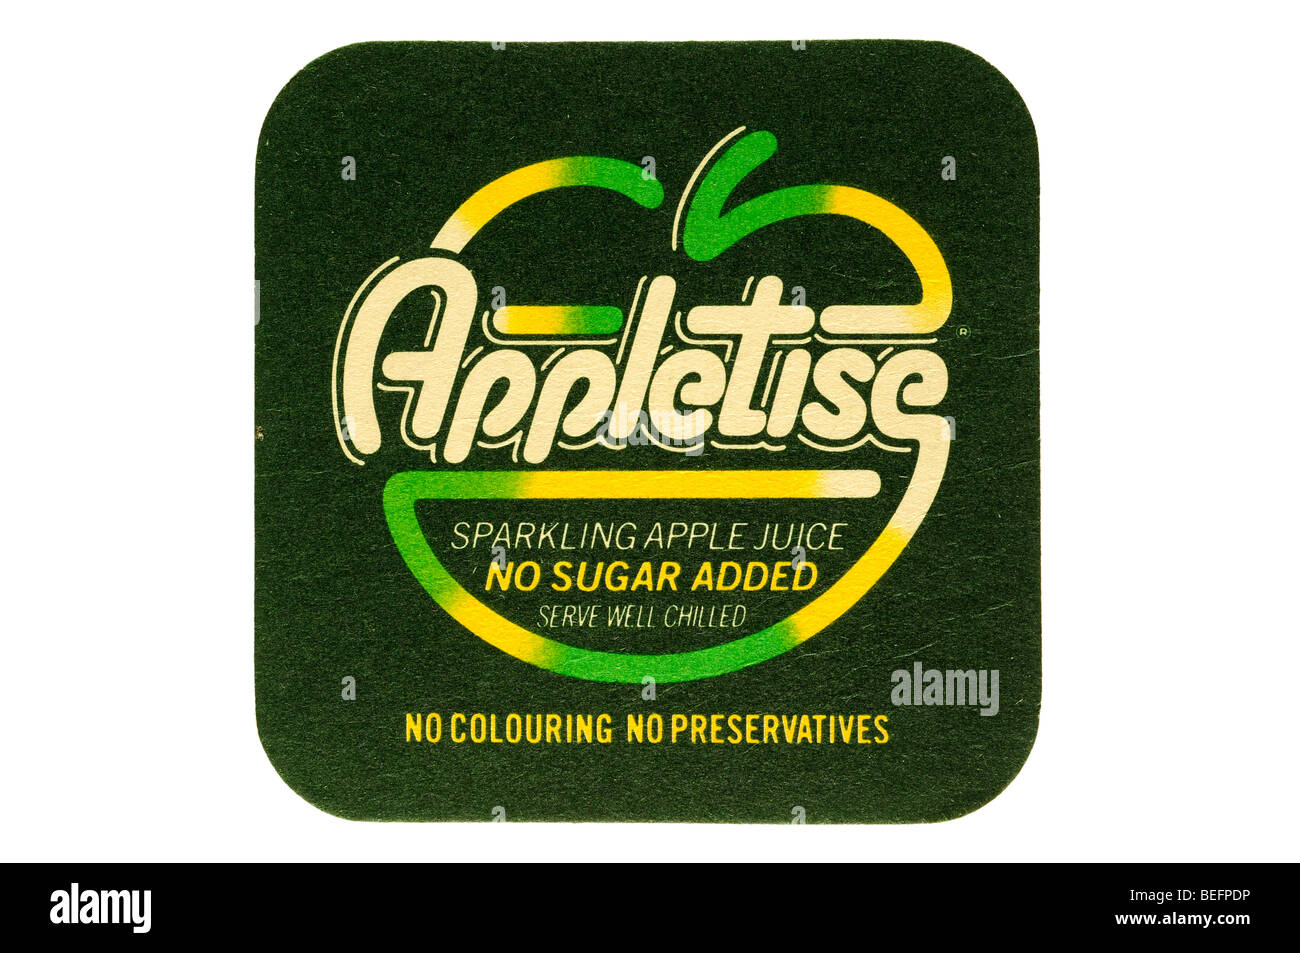 appletise sparkling apple juice no sugar added serve well chilled no colouring no preservatives - Stock Image